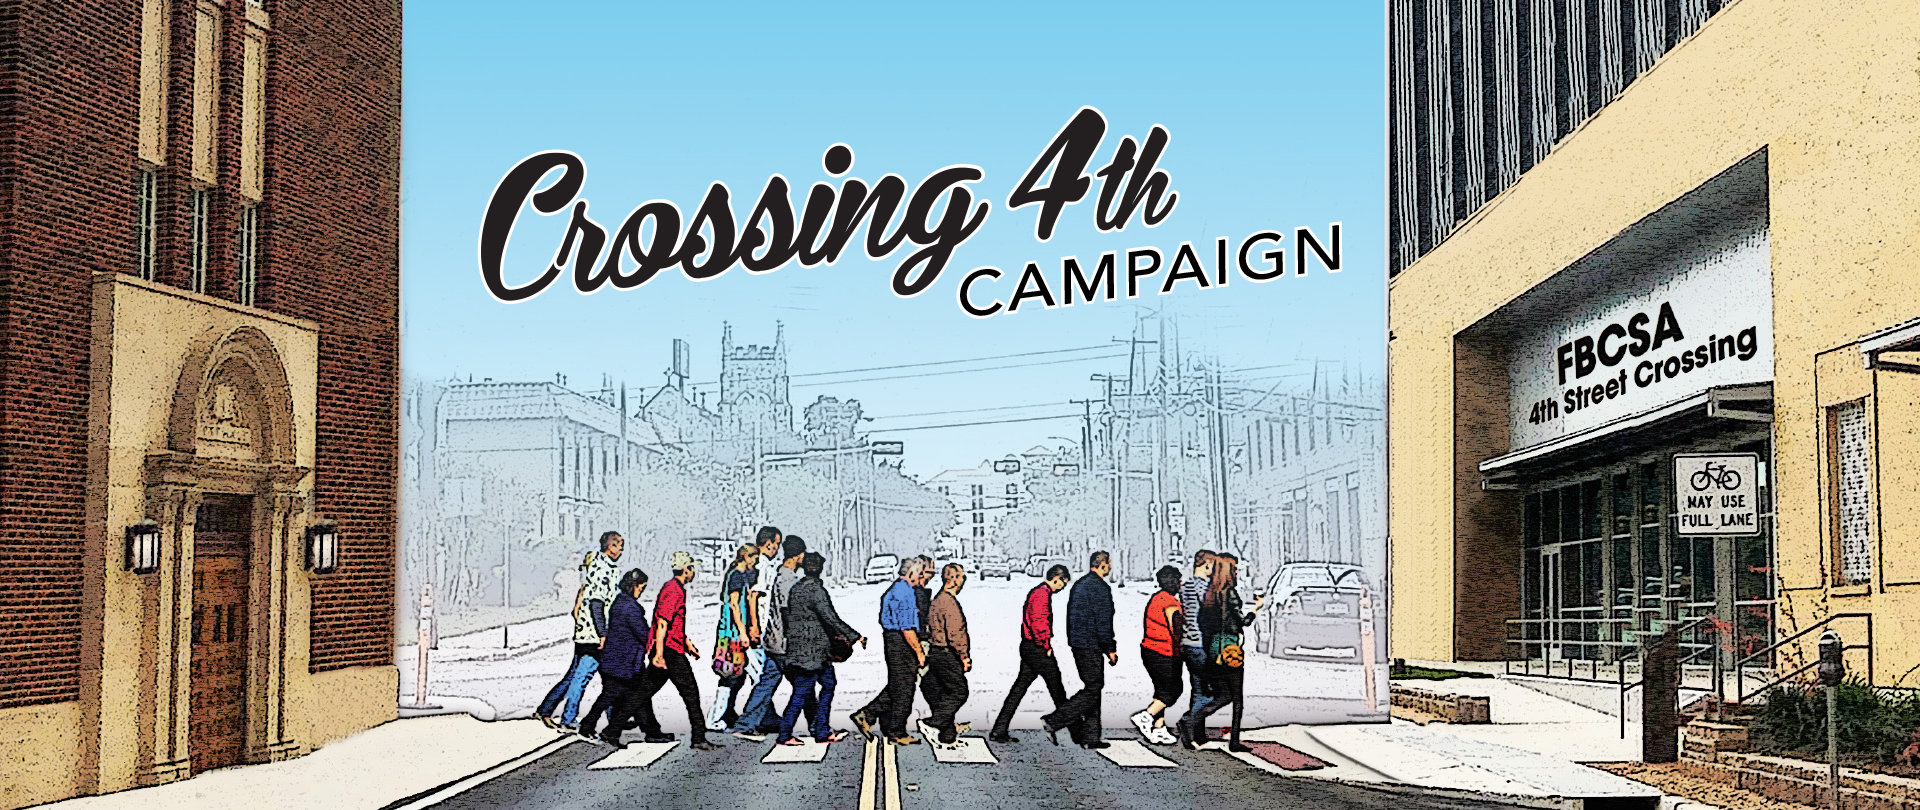 Crossing 4th Campaign